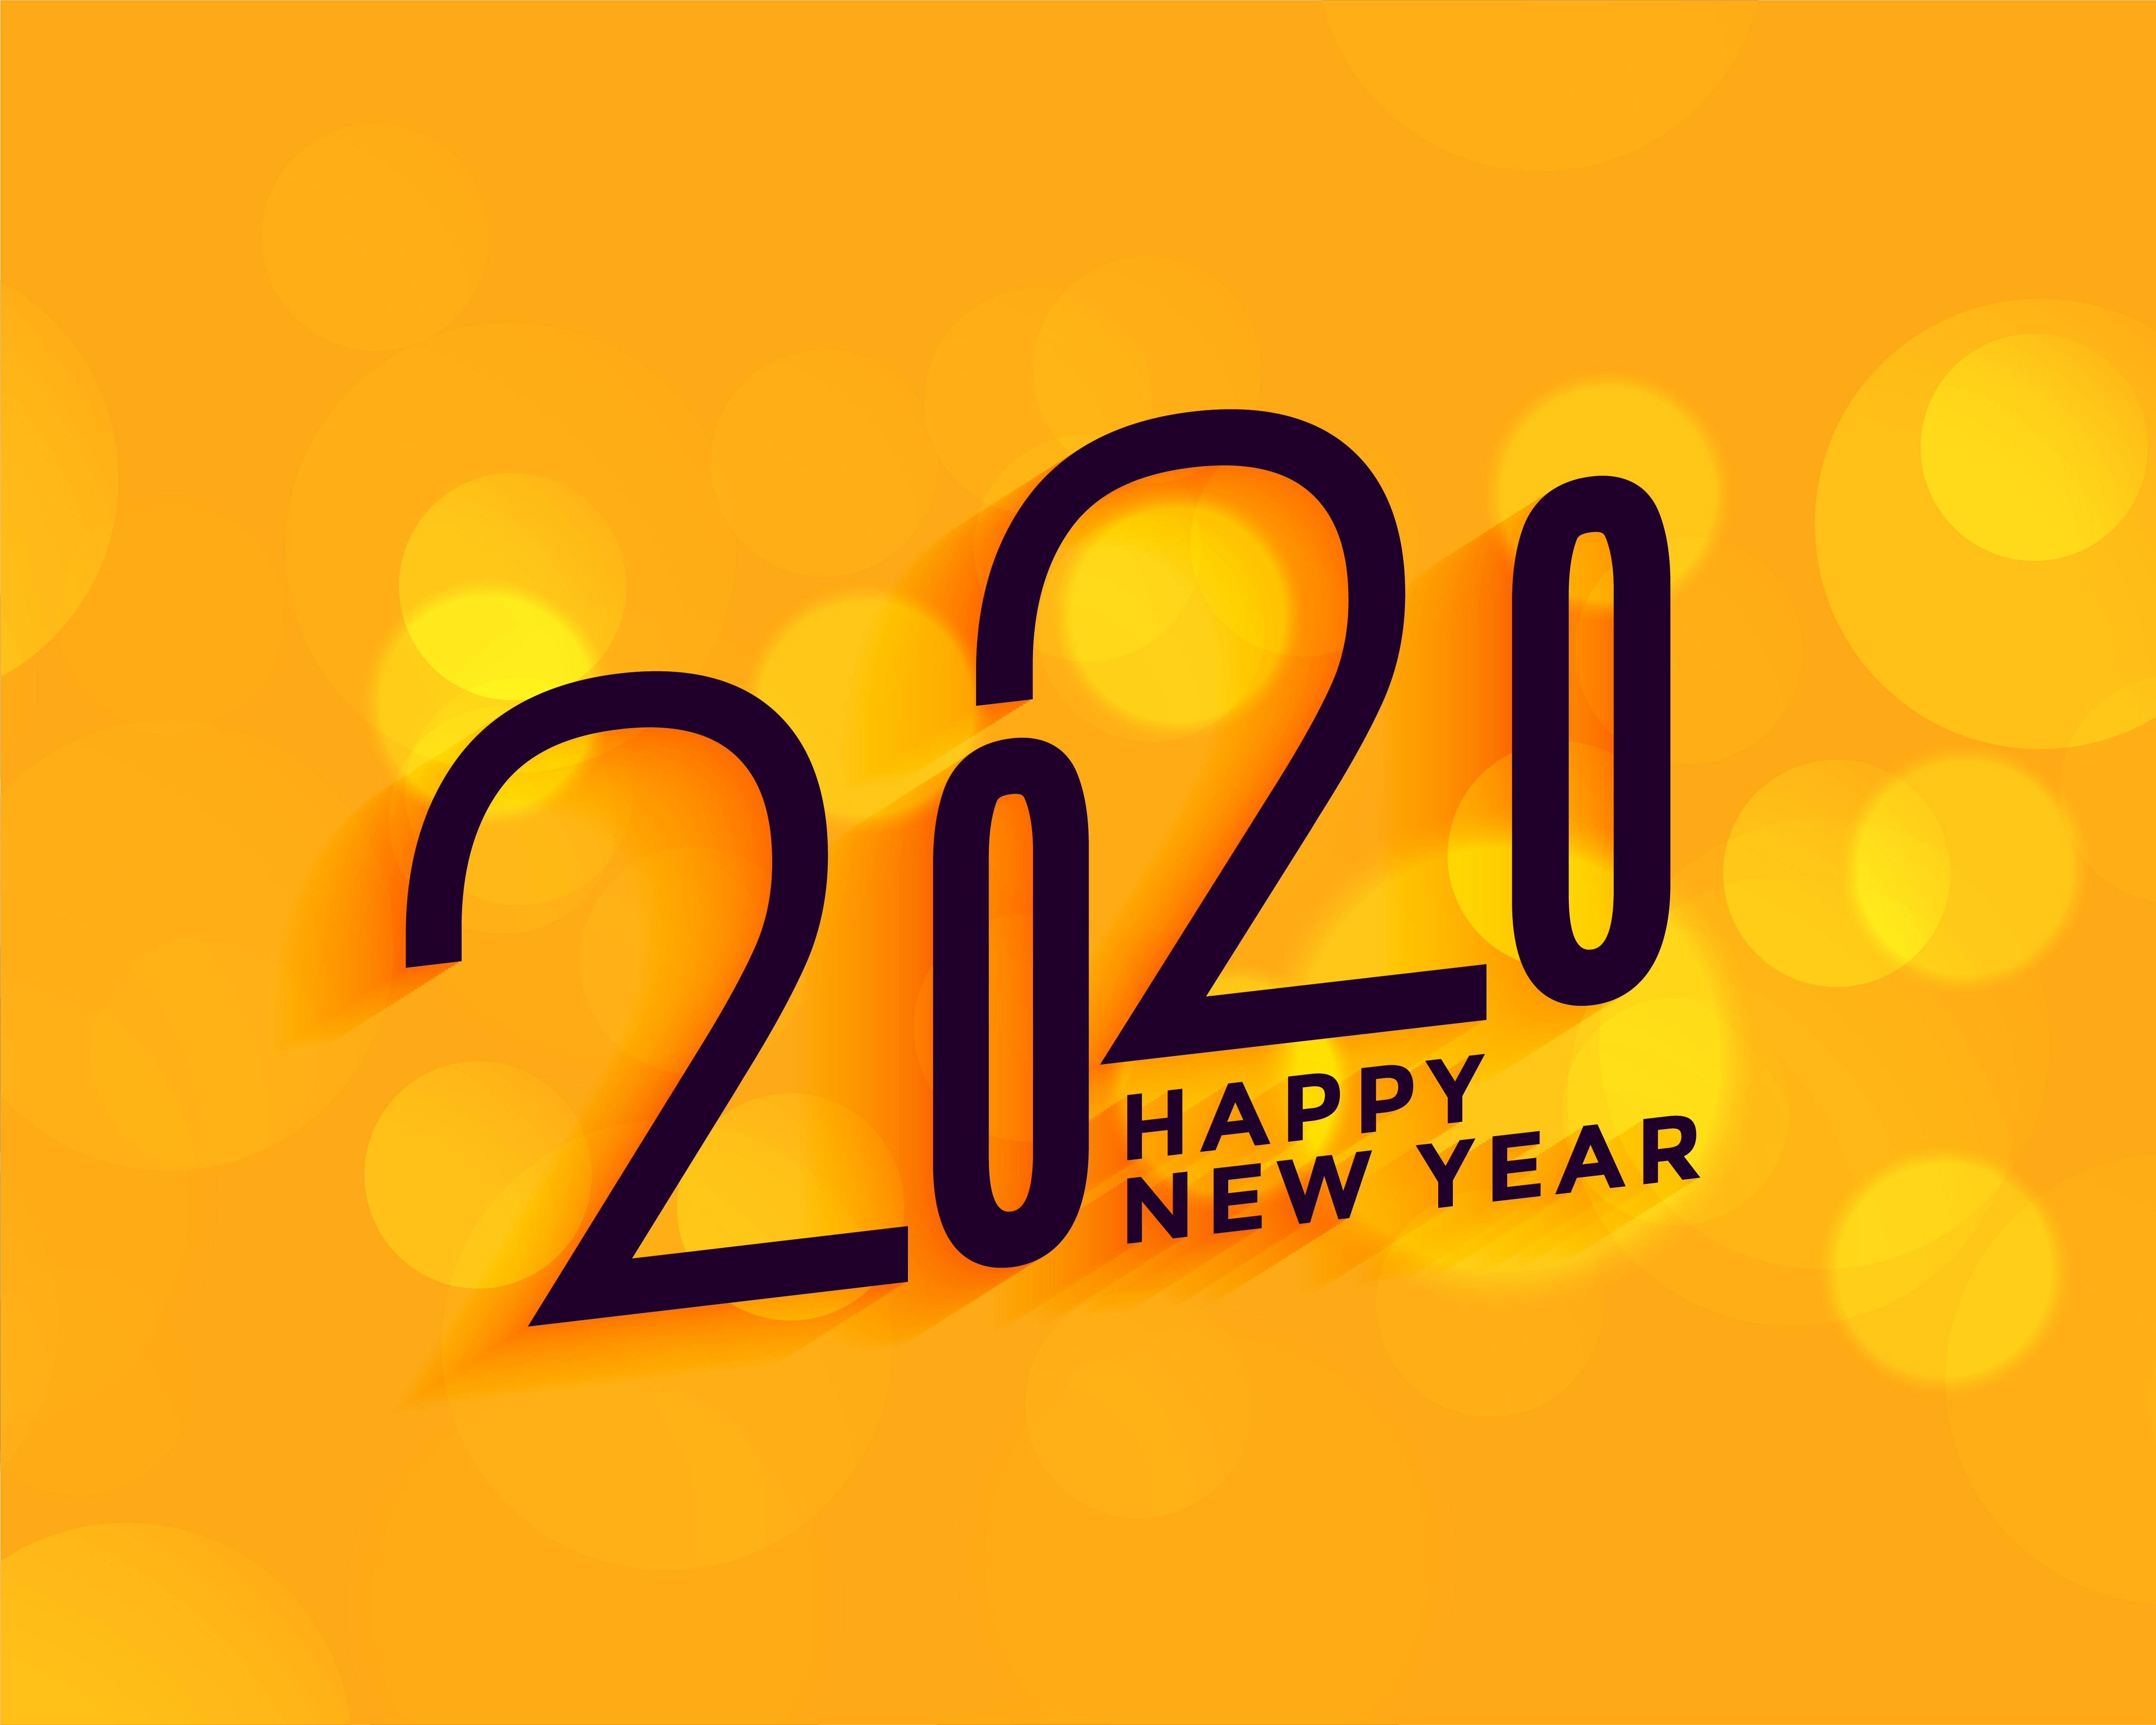 2020 New Year Wallpaper HD Holidays 4K Wallpapers Images Photos 5001x4001